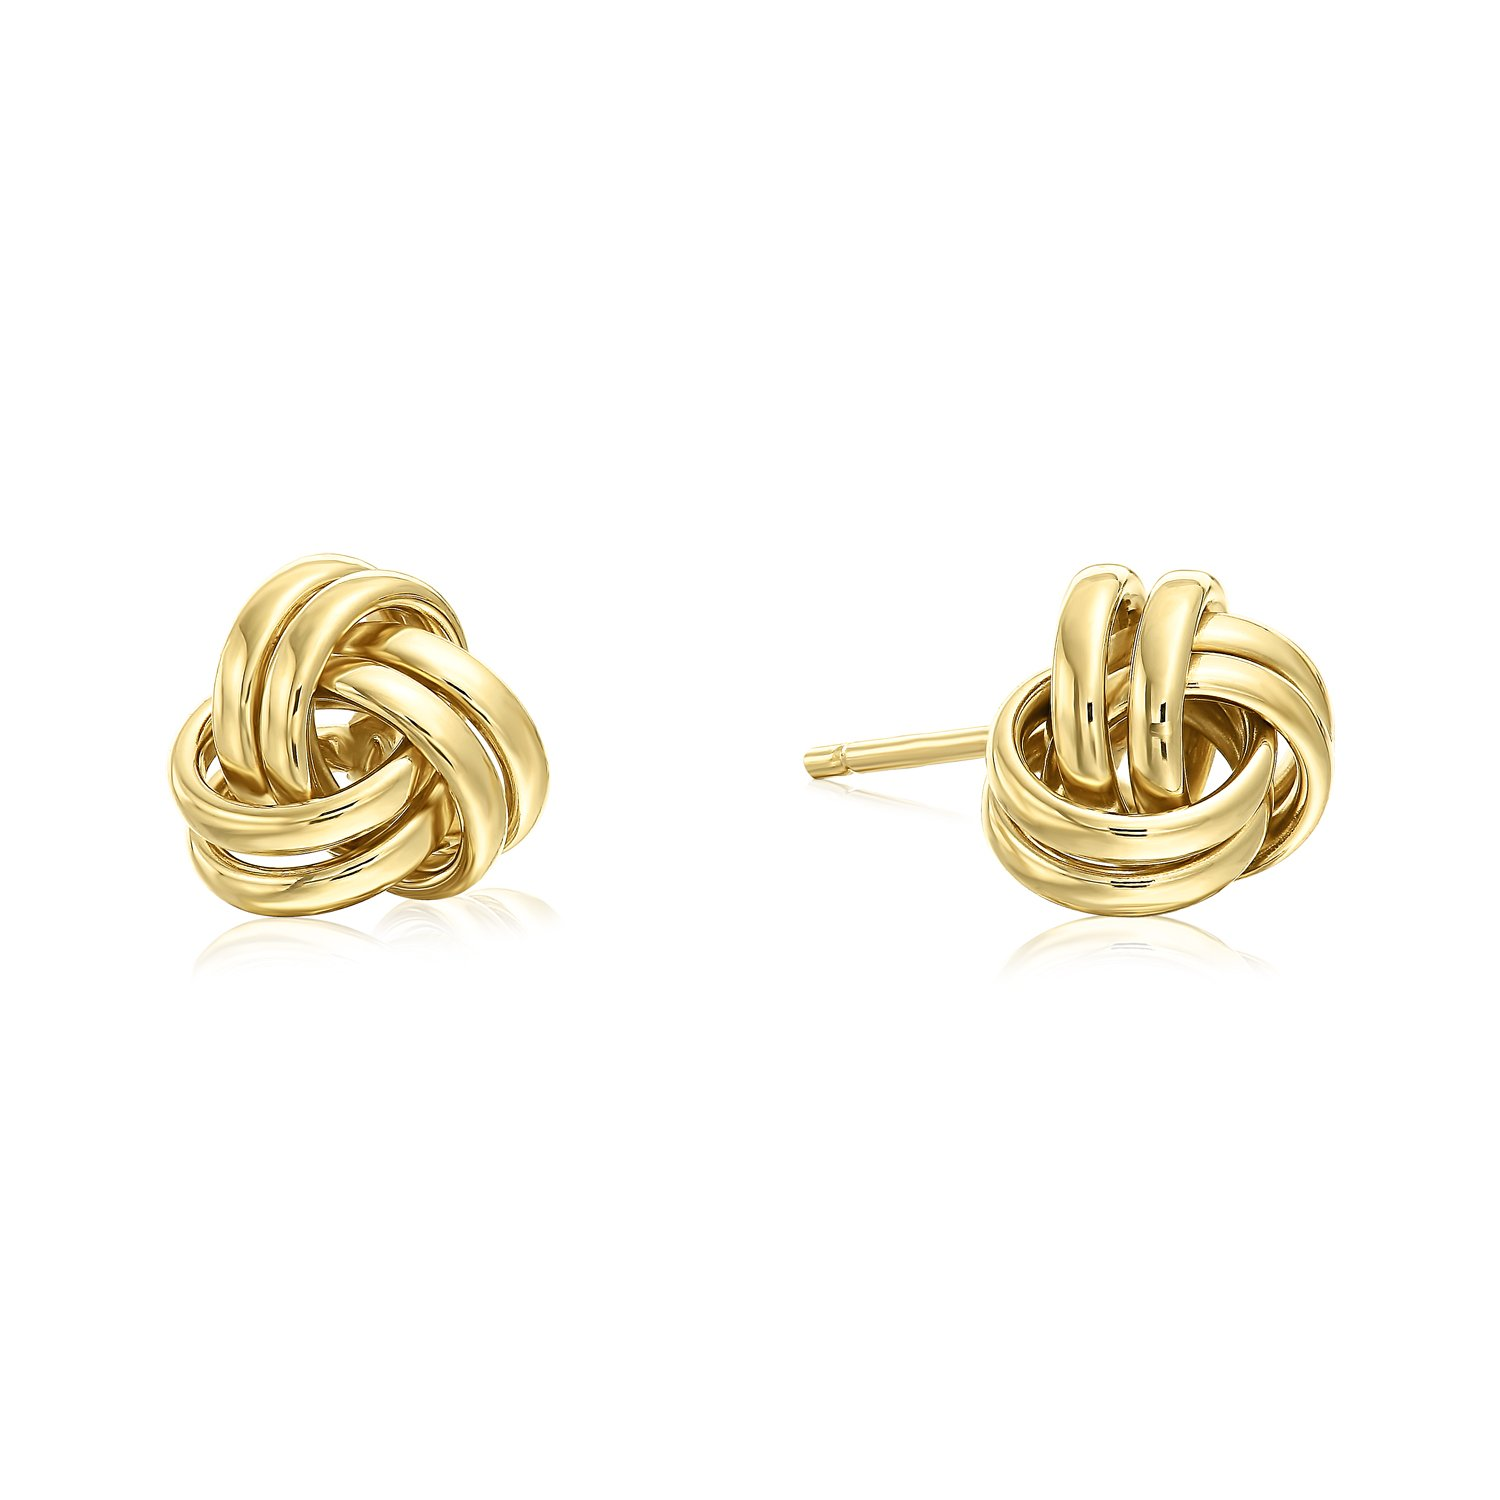 14k Gold Polished Love Knot Stud Earrings - 7mm (yellow-gold) by Tilo Jewelry (Image #1)